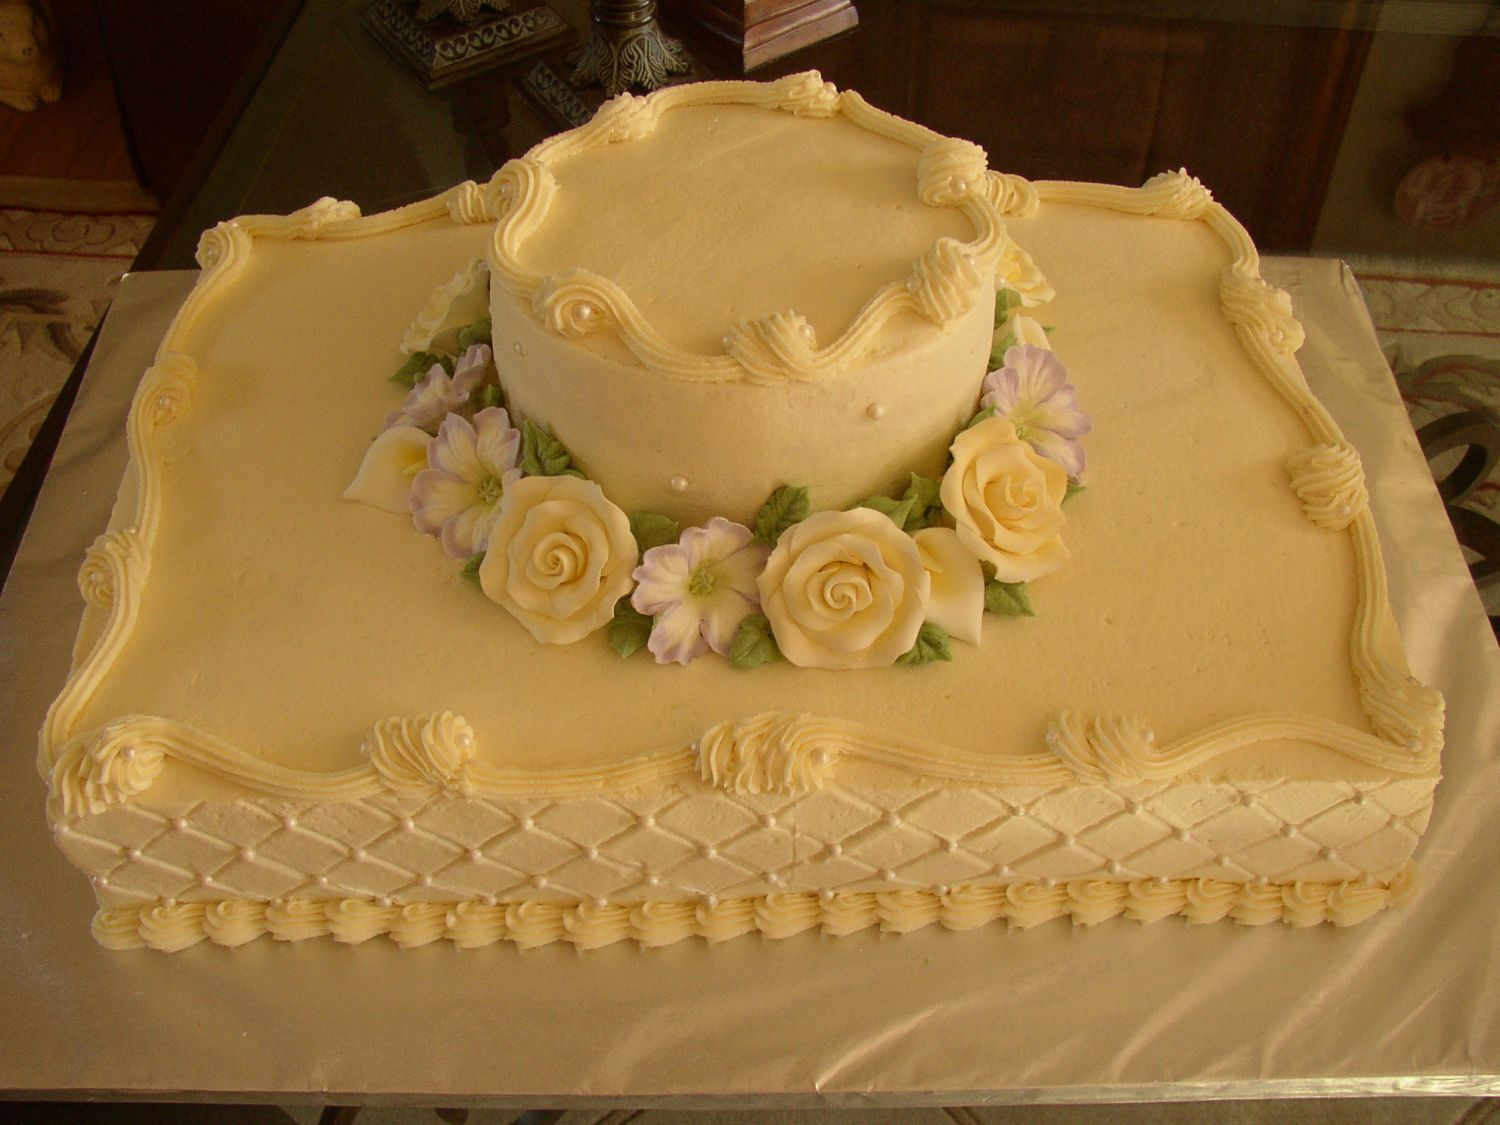 Sheet Cake Wedding  sheet cake wedding Buttercream qilted with pearls